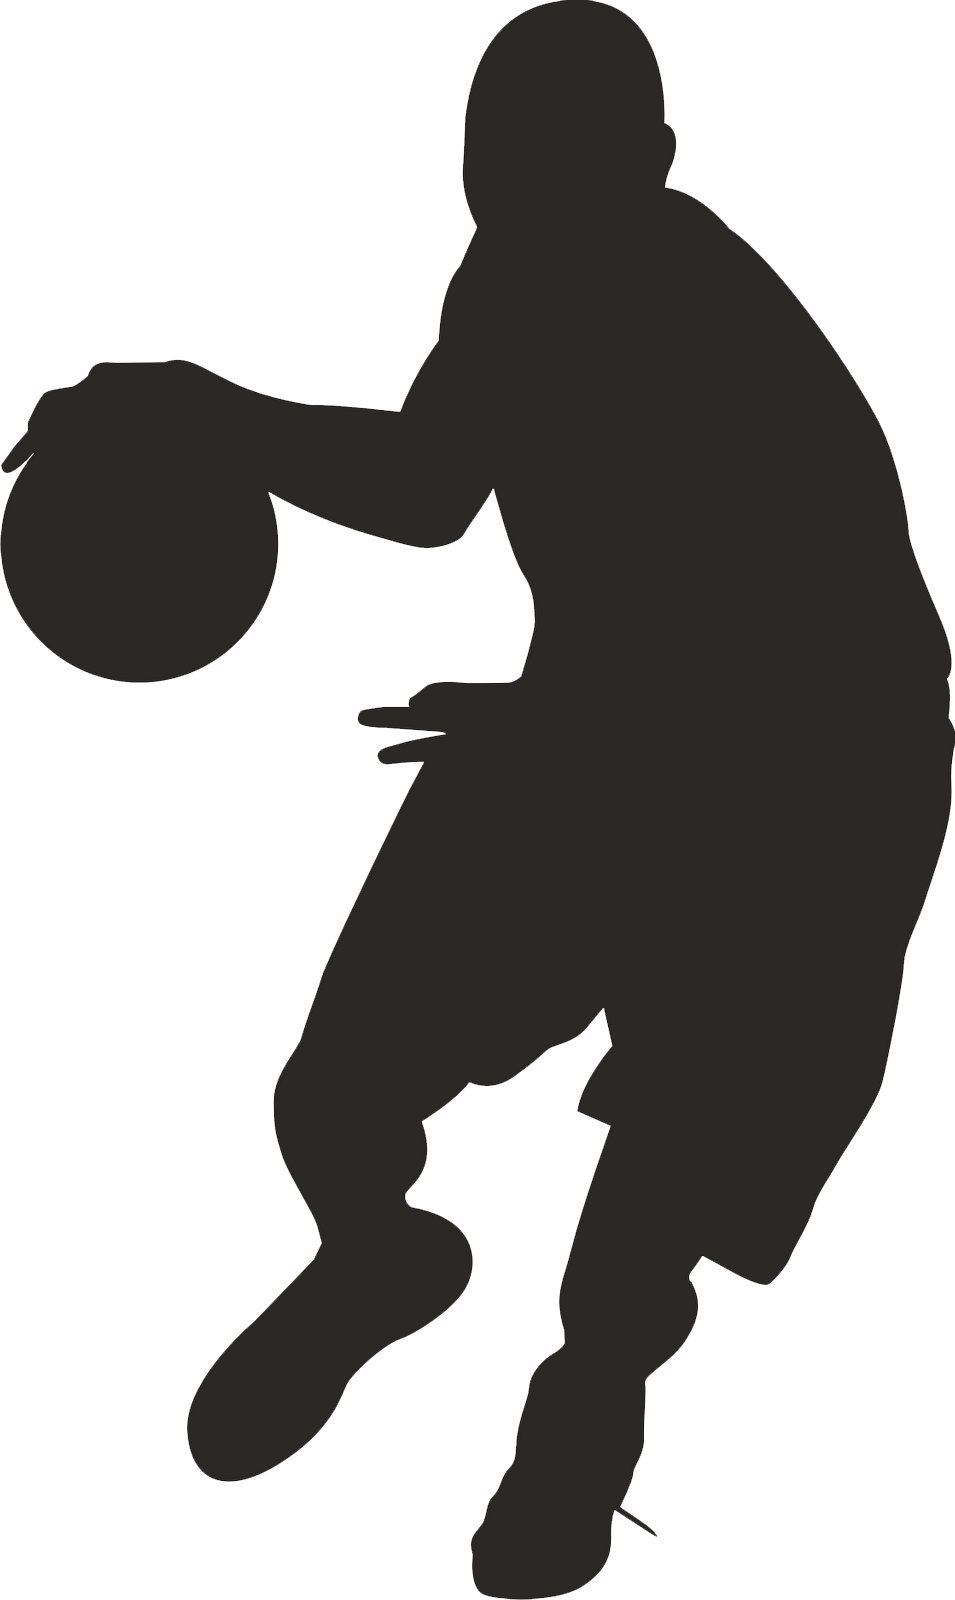 Basketball players clipart free clip art stock Silhouette Basketball Players at GetDrawings.com | Free for personal ... clip art stock